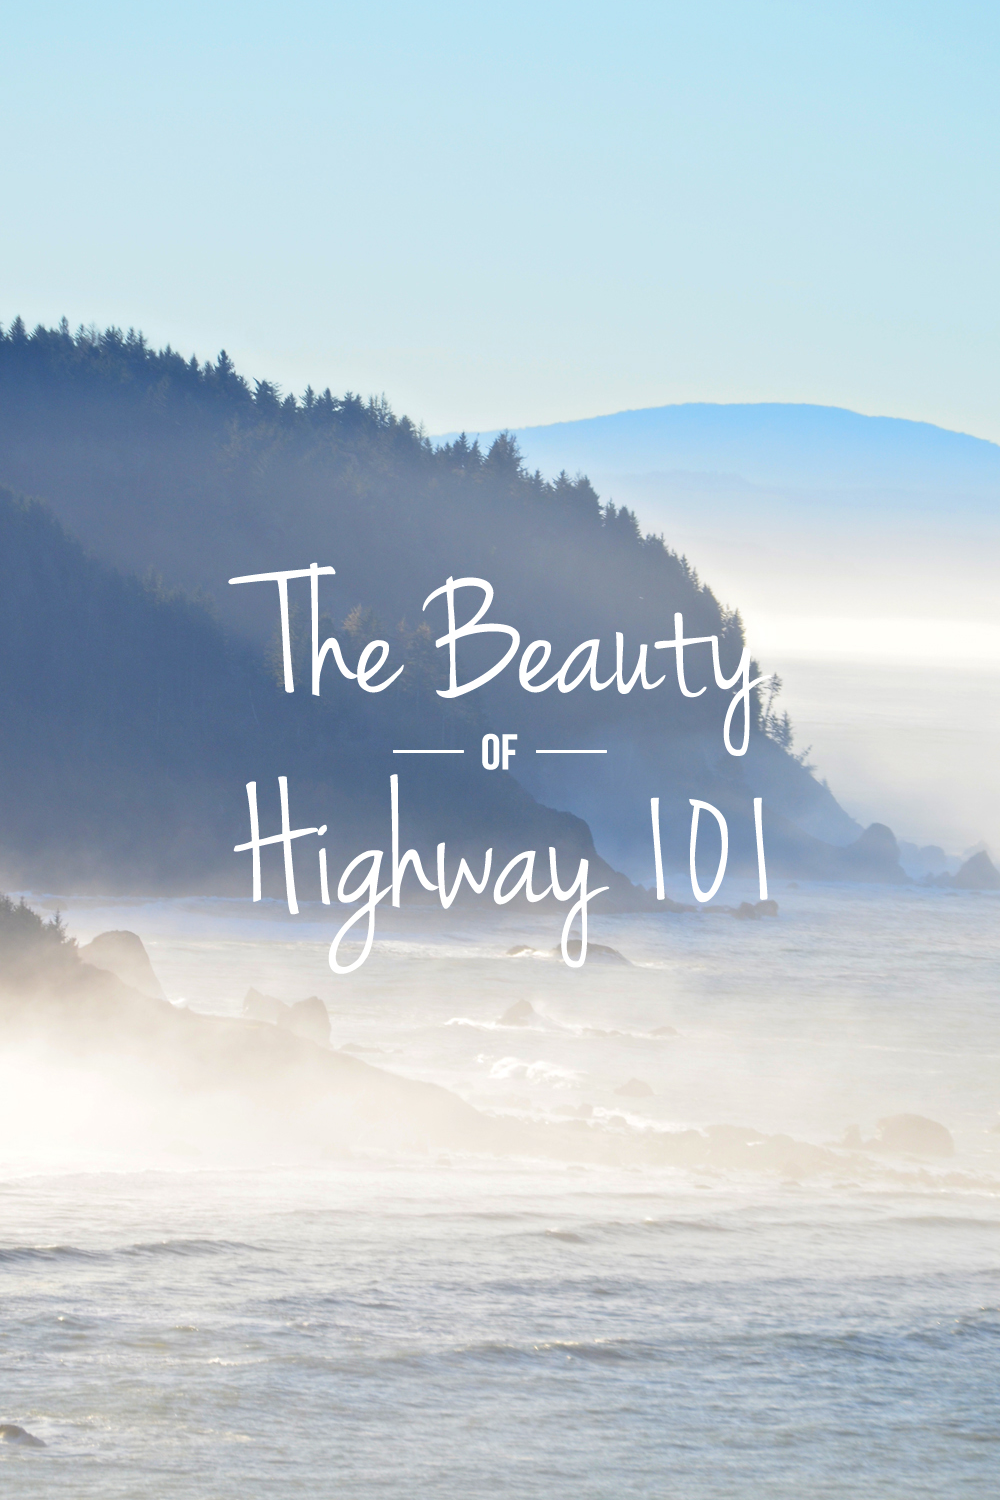 The beauty of Highway 101 in Del Norte County, California